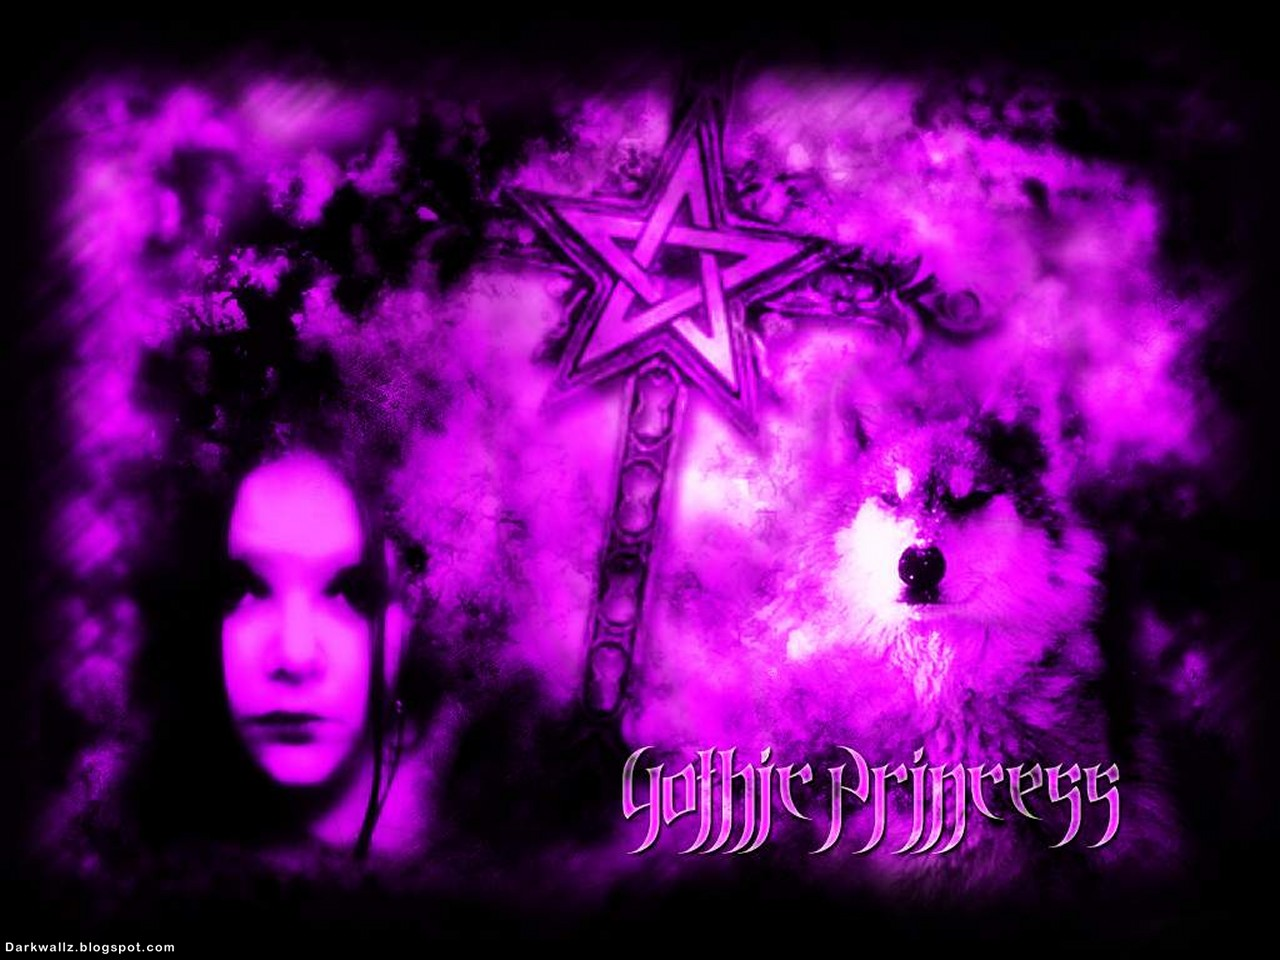 Gothic Princess | Dark Wallpaper Download